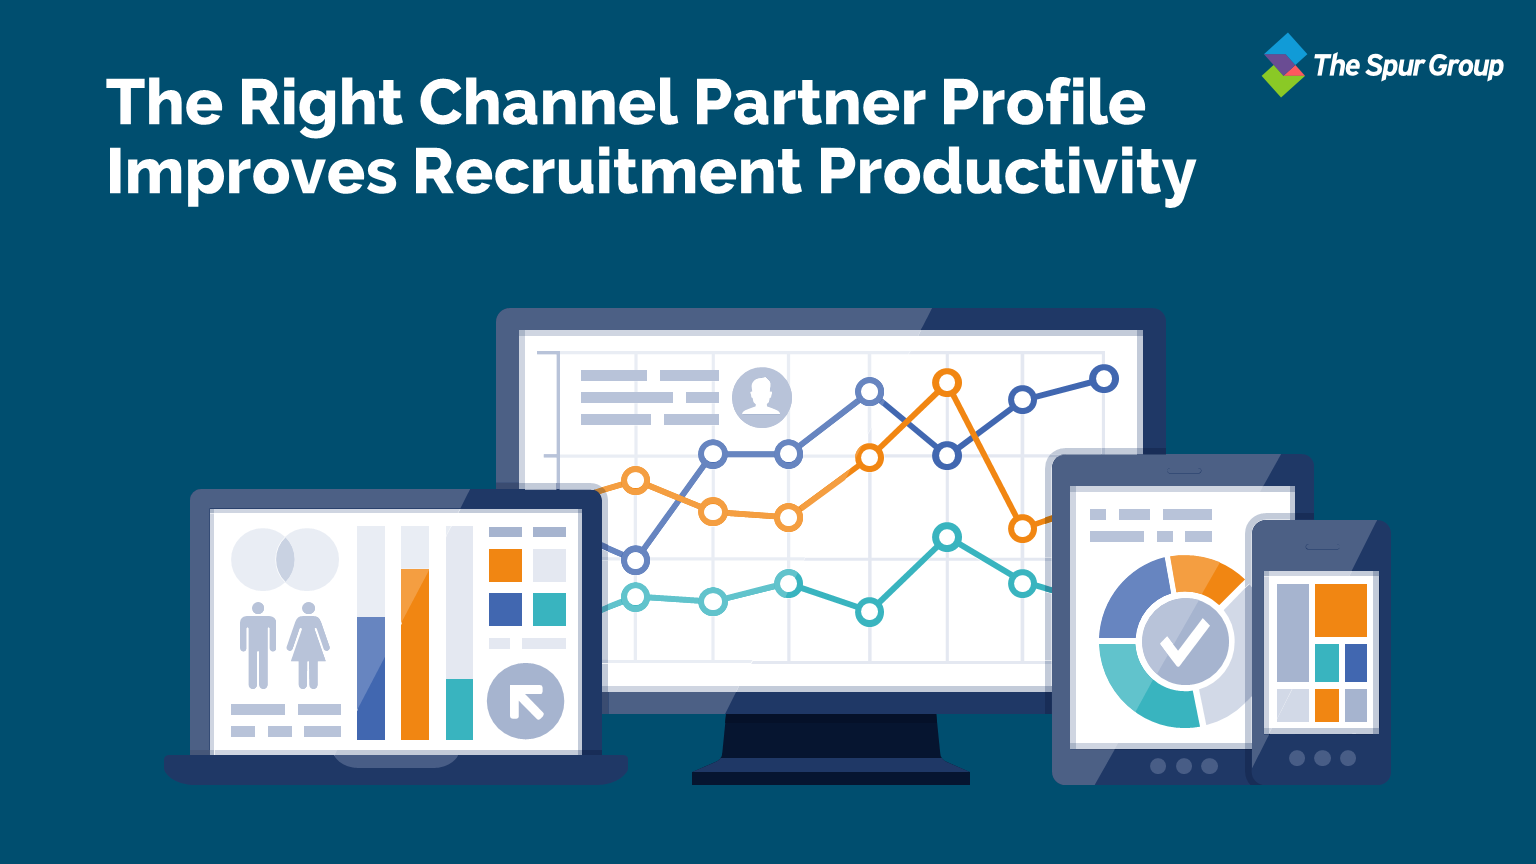 The Right Channel Partner Profile Improves Recruitment Productivity